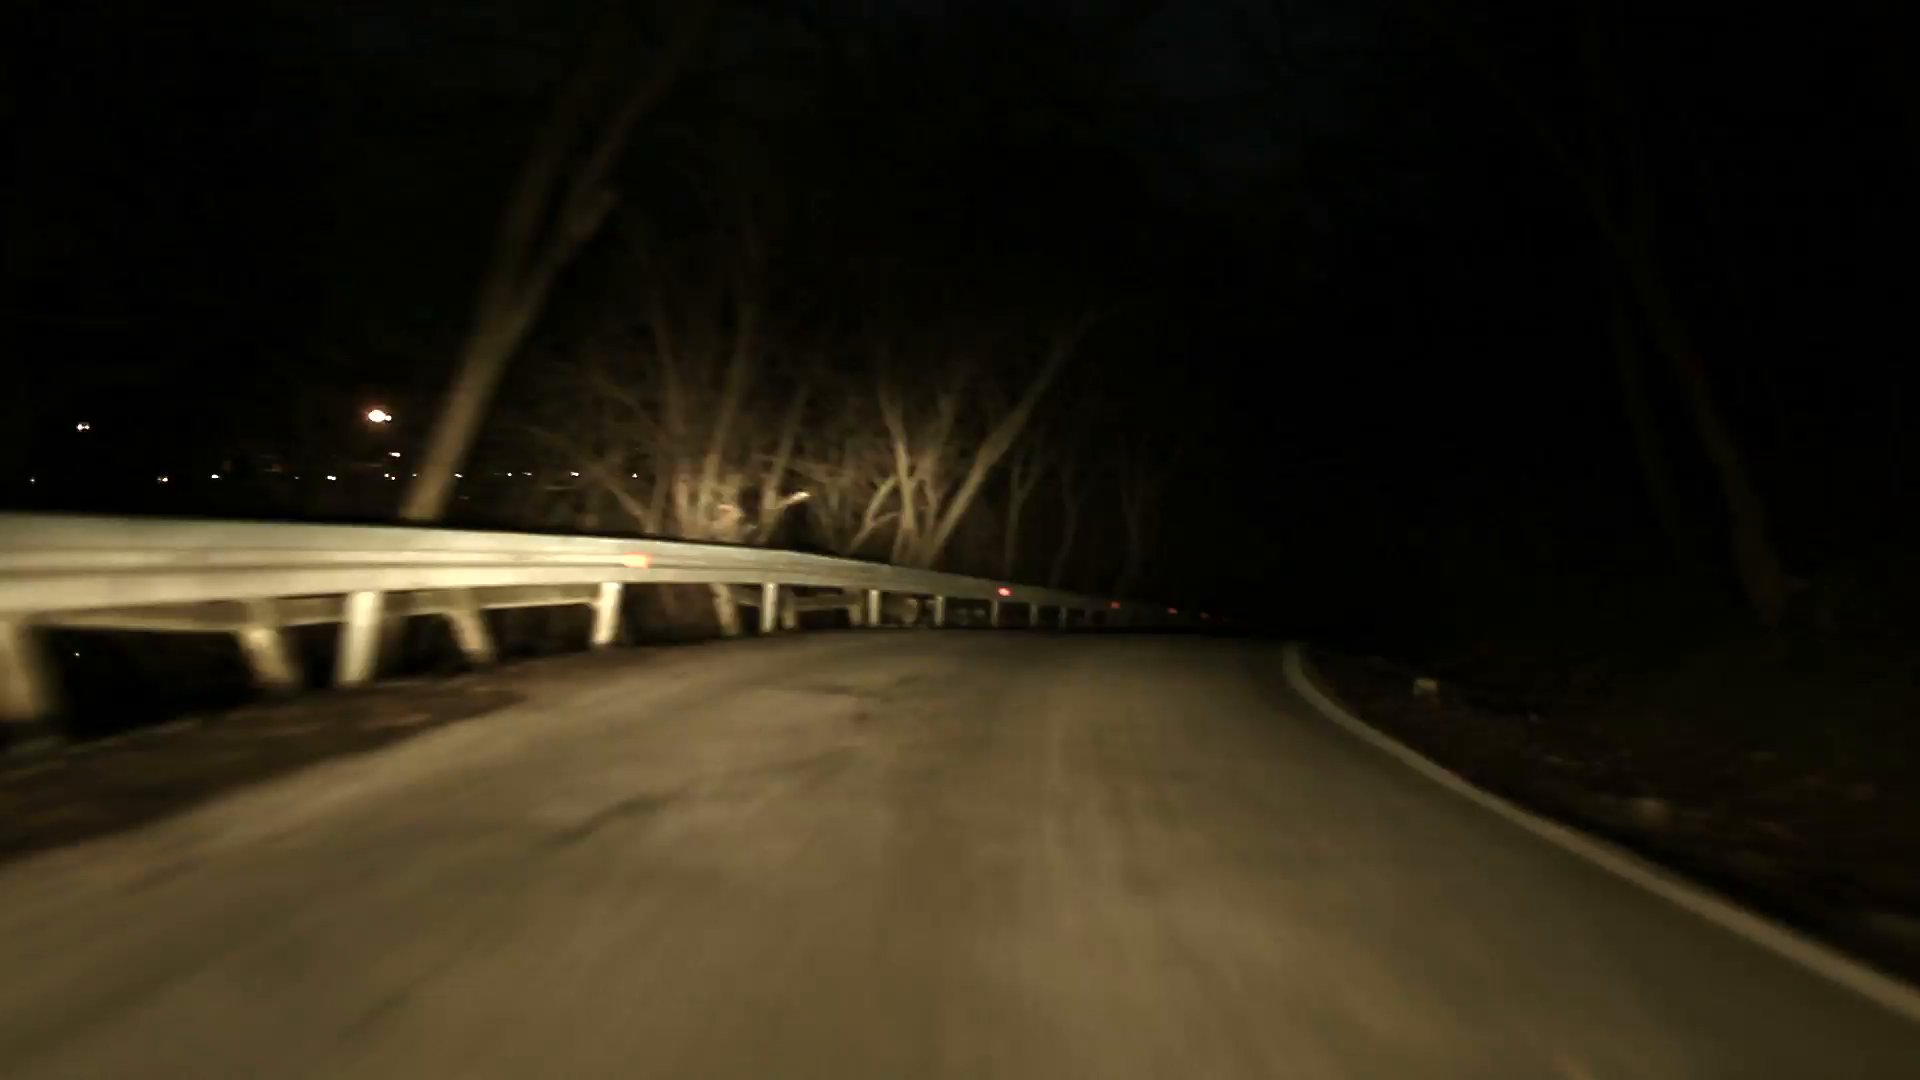 driving-on-the-dark-road-in-the-winter-night-pov-of-the-vehicle_mjdi42hq__f0004